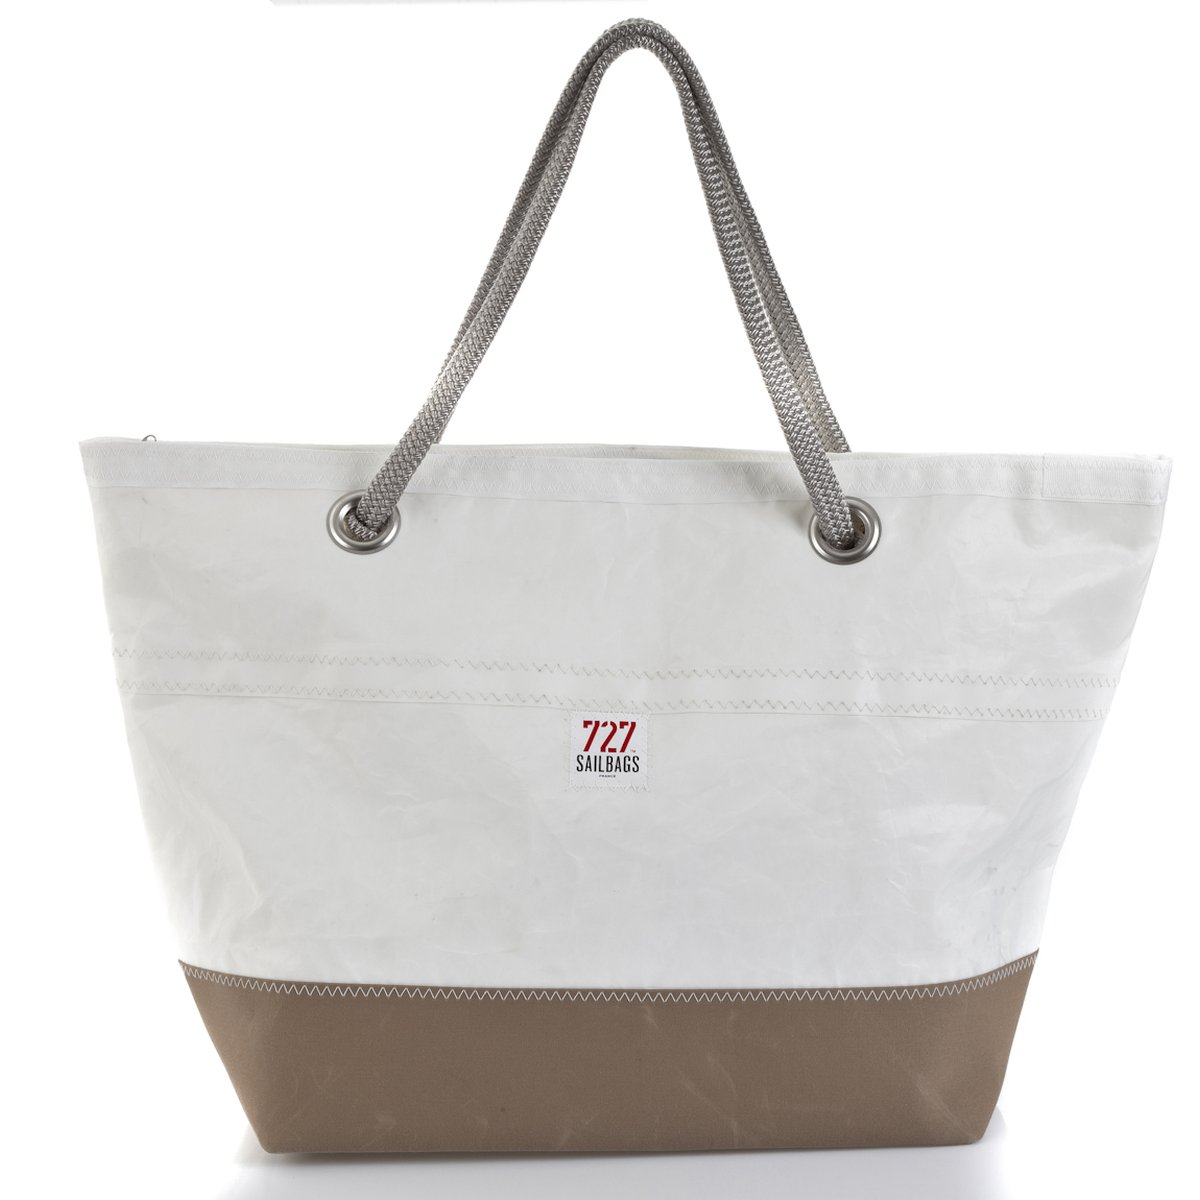 CARLA Tasche Light Brown No 8 grey Rückseite